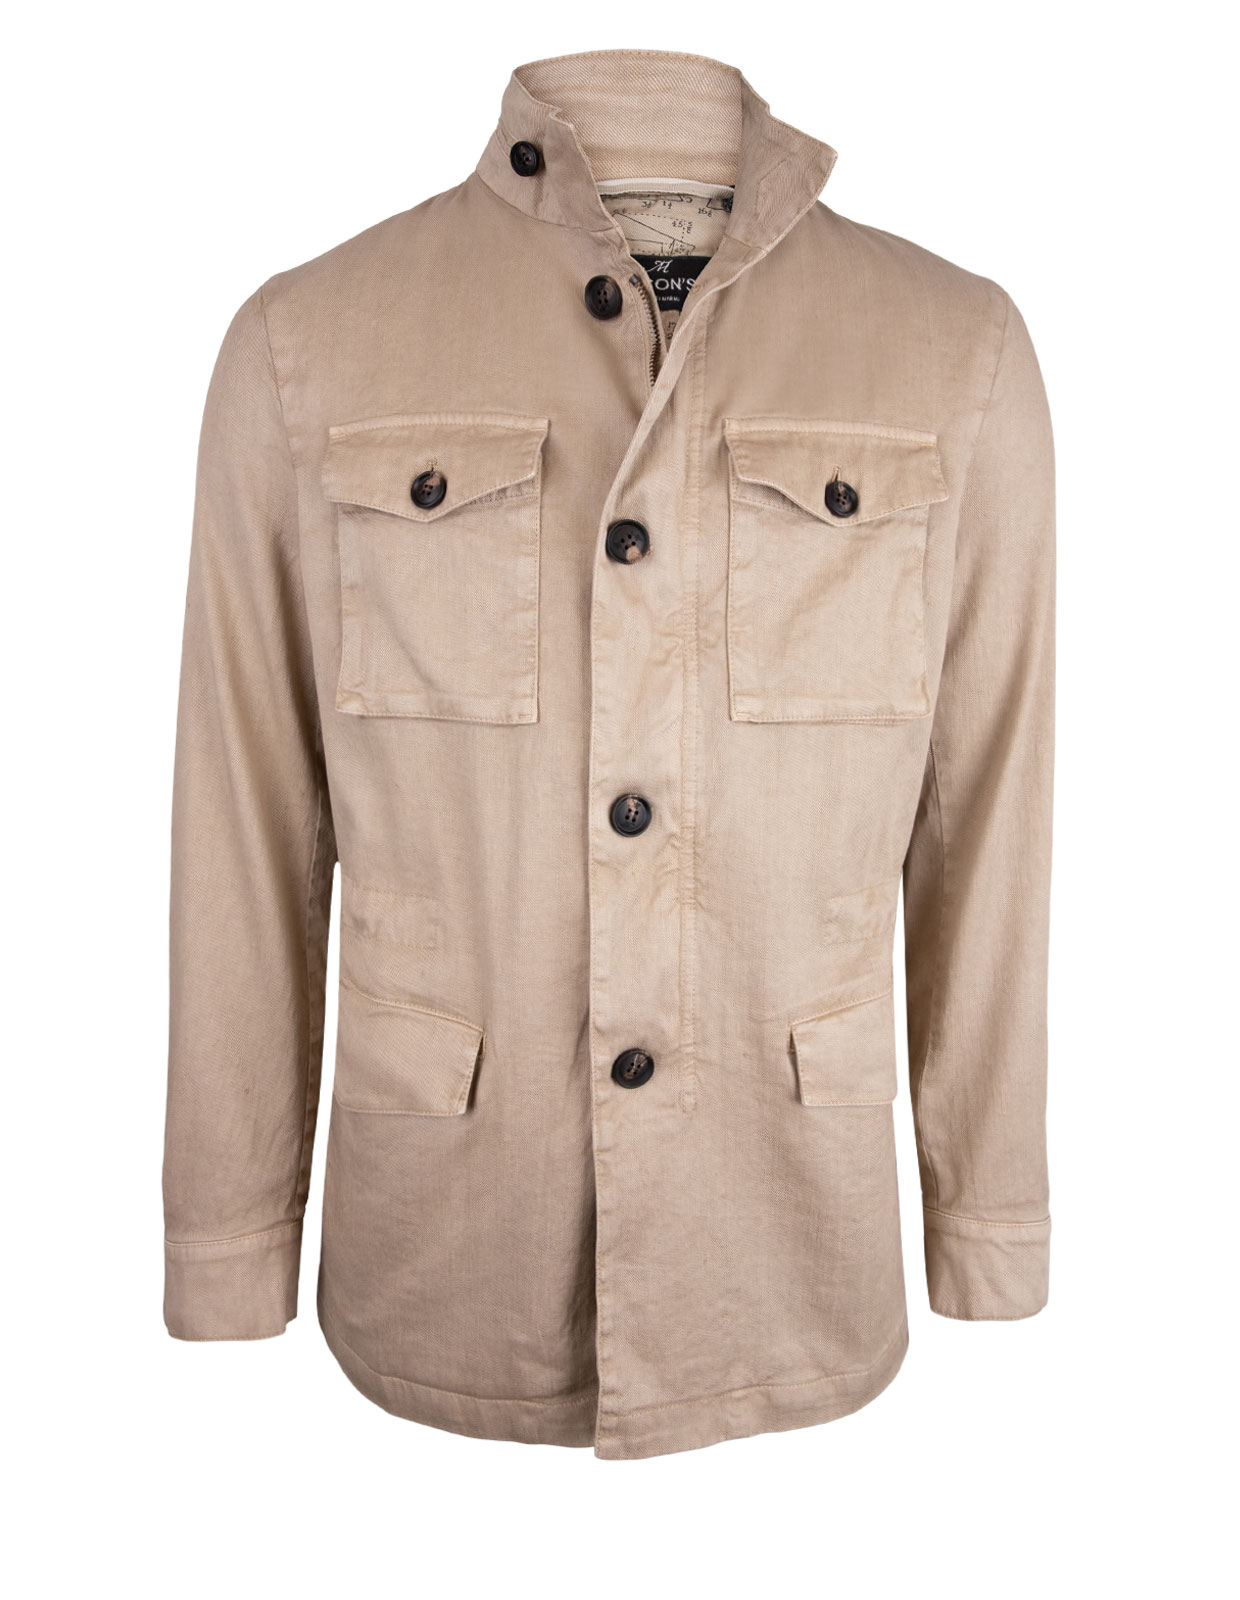 Cityfield Safari Jacket Beige